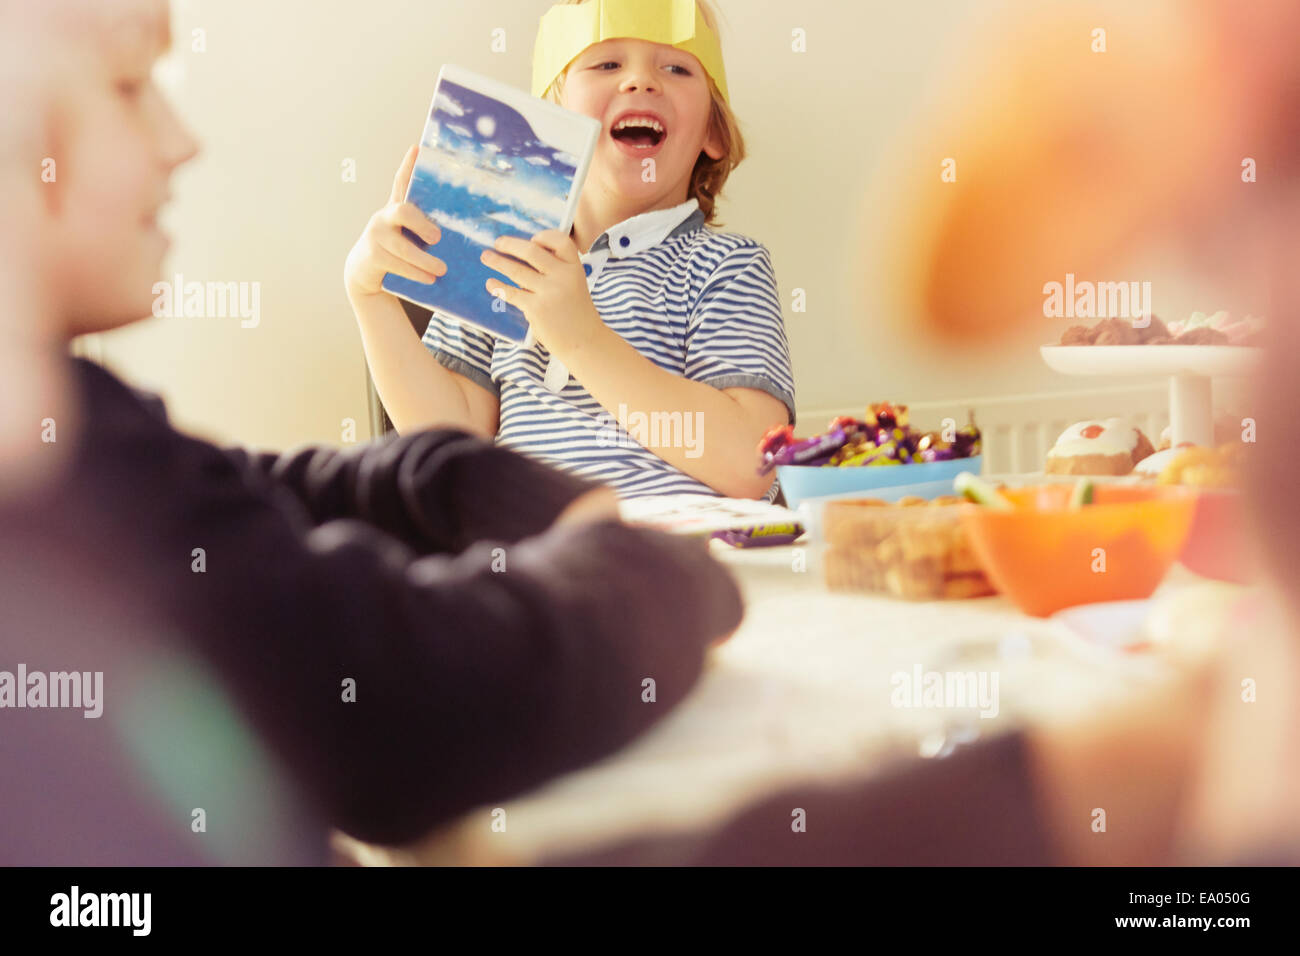 Young boy holding up opened Christmas present at table - Stock Image